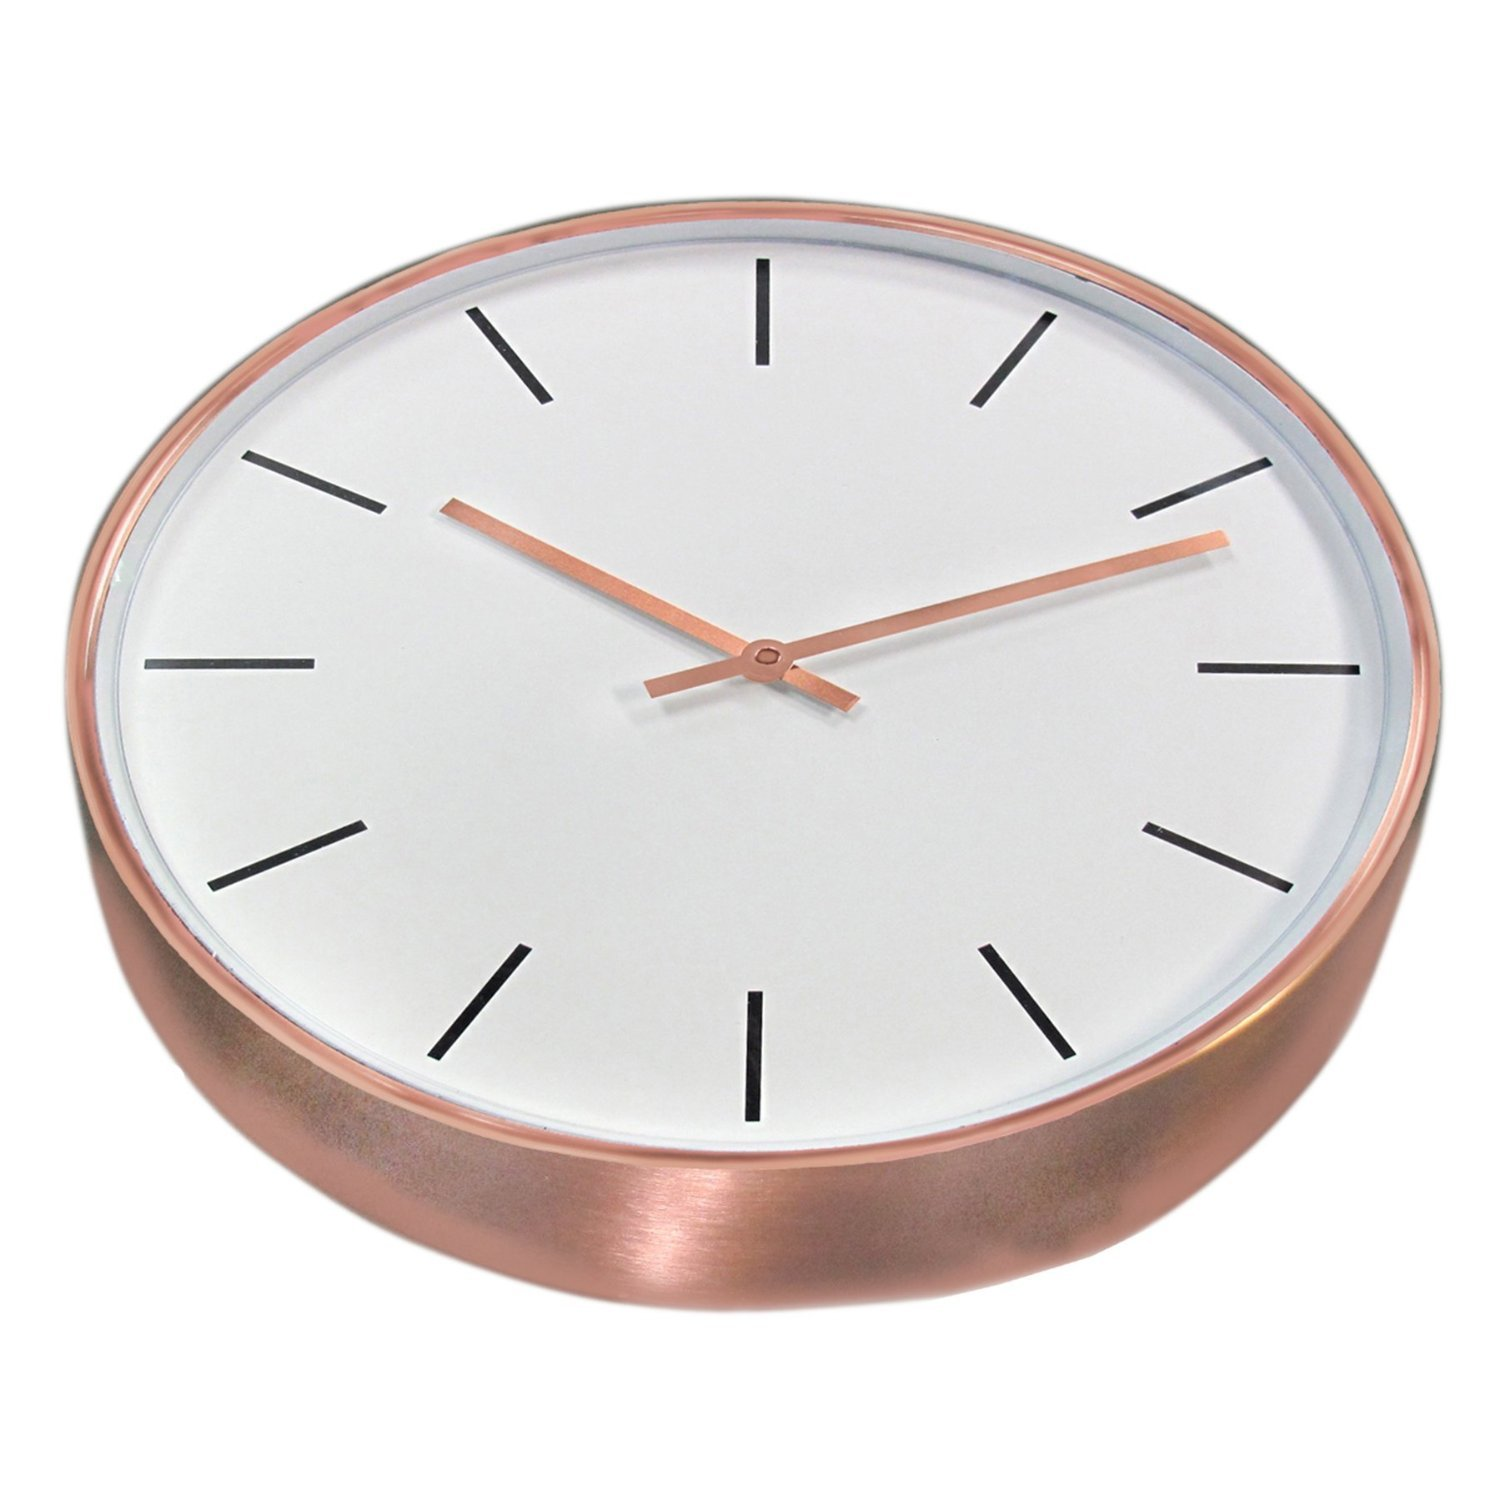 Amazon 15 genuine brushed copper wall clock with copper amazon 15 genuine brushed copper wall clock with copper hands and glass face home improvement amipublicfo Choice Image